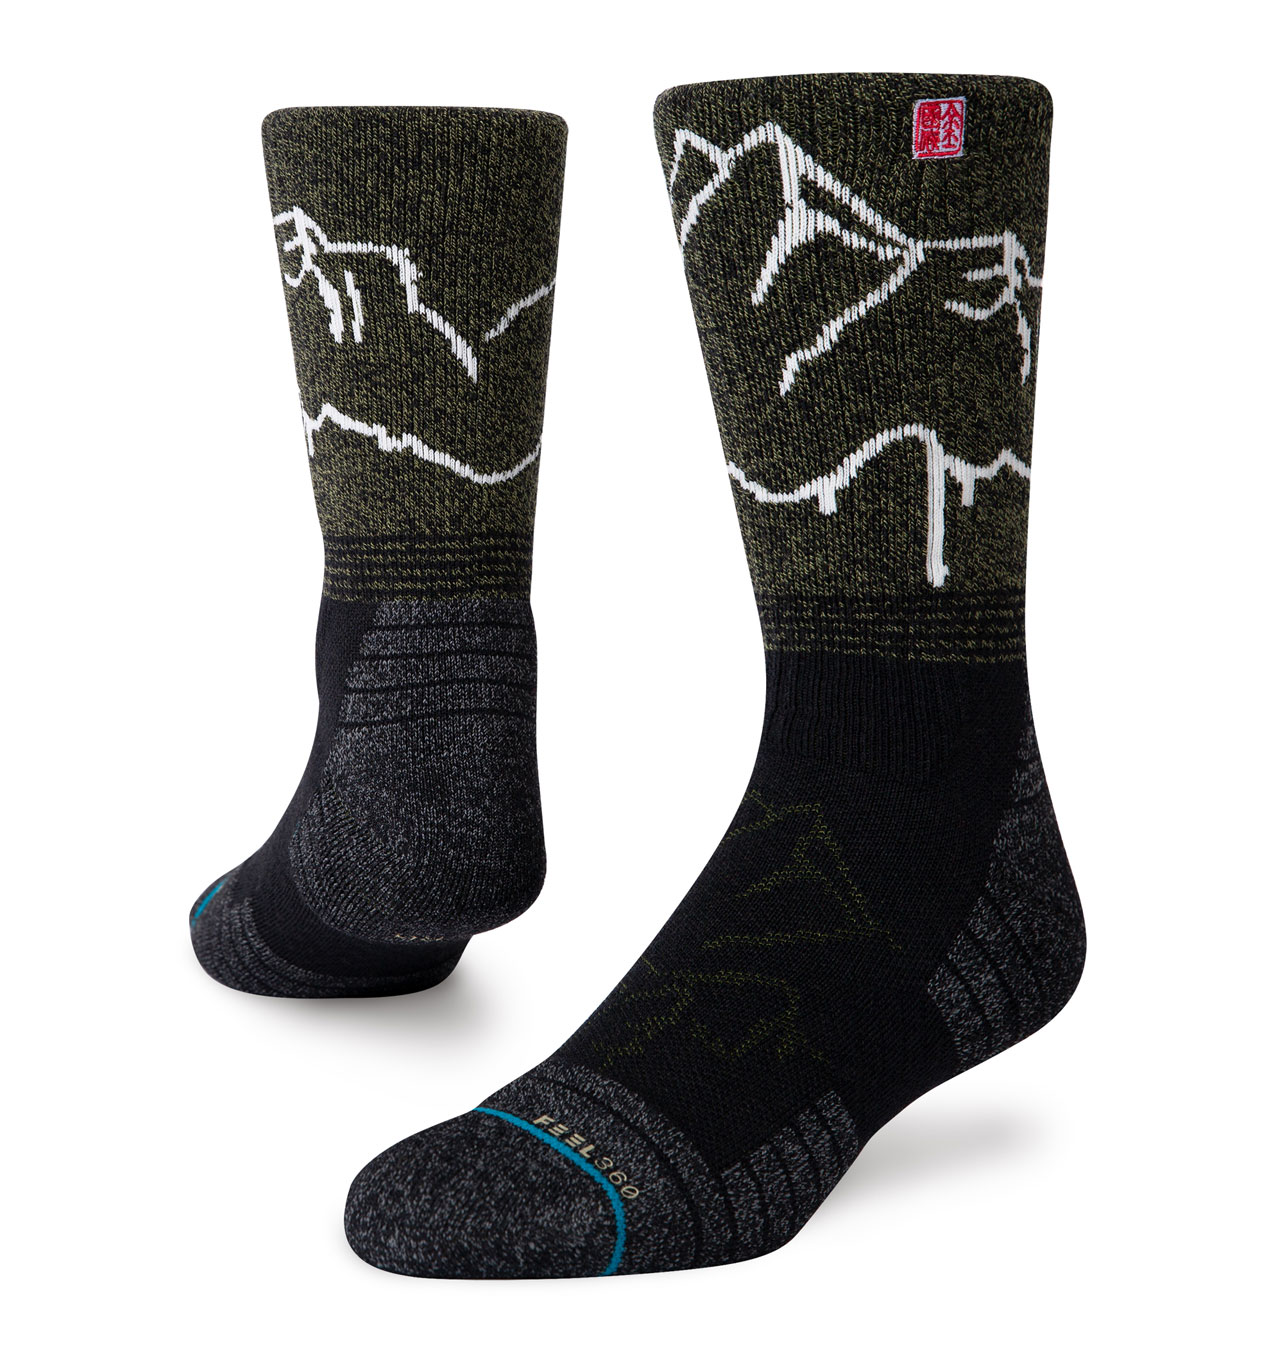 Stance - Feel360 Hike Garhwal Crew Socks - Green